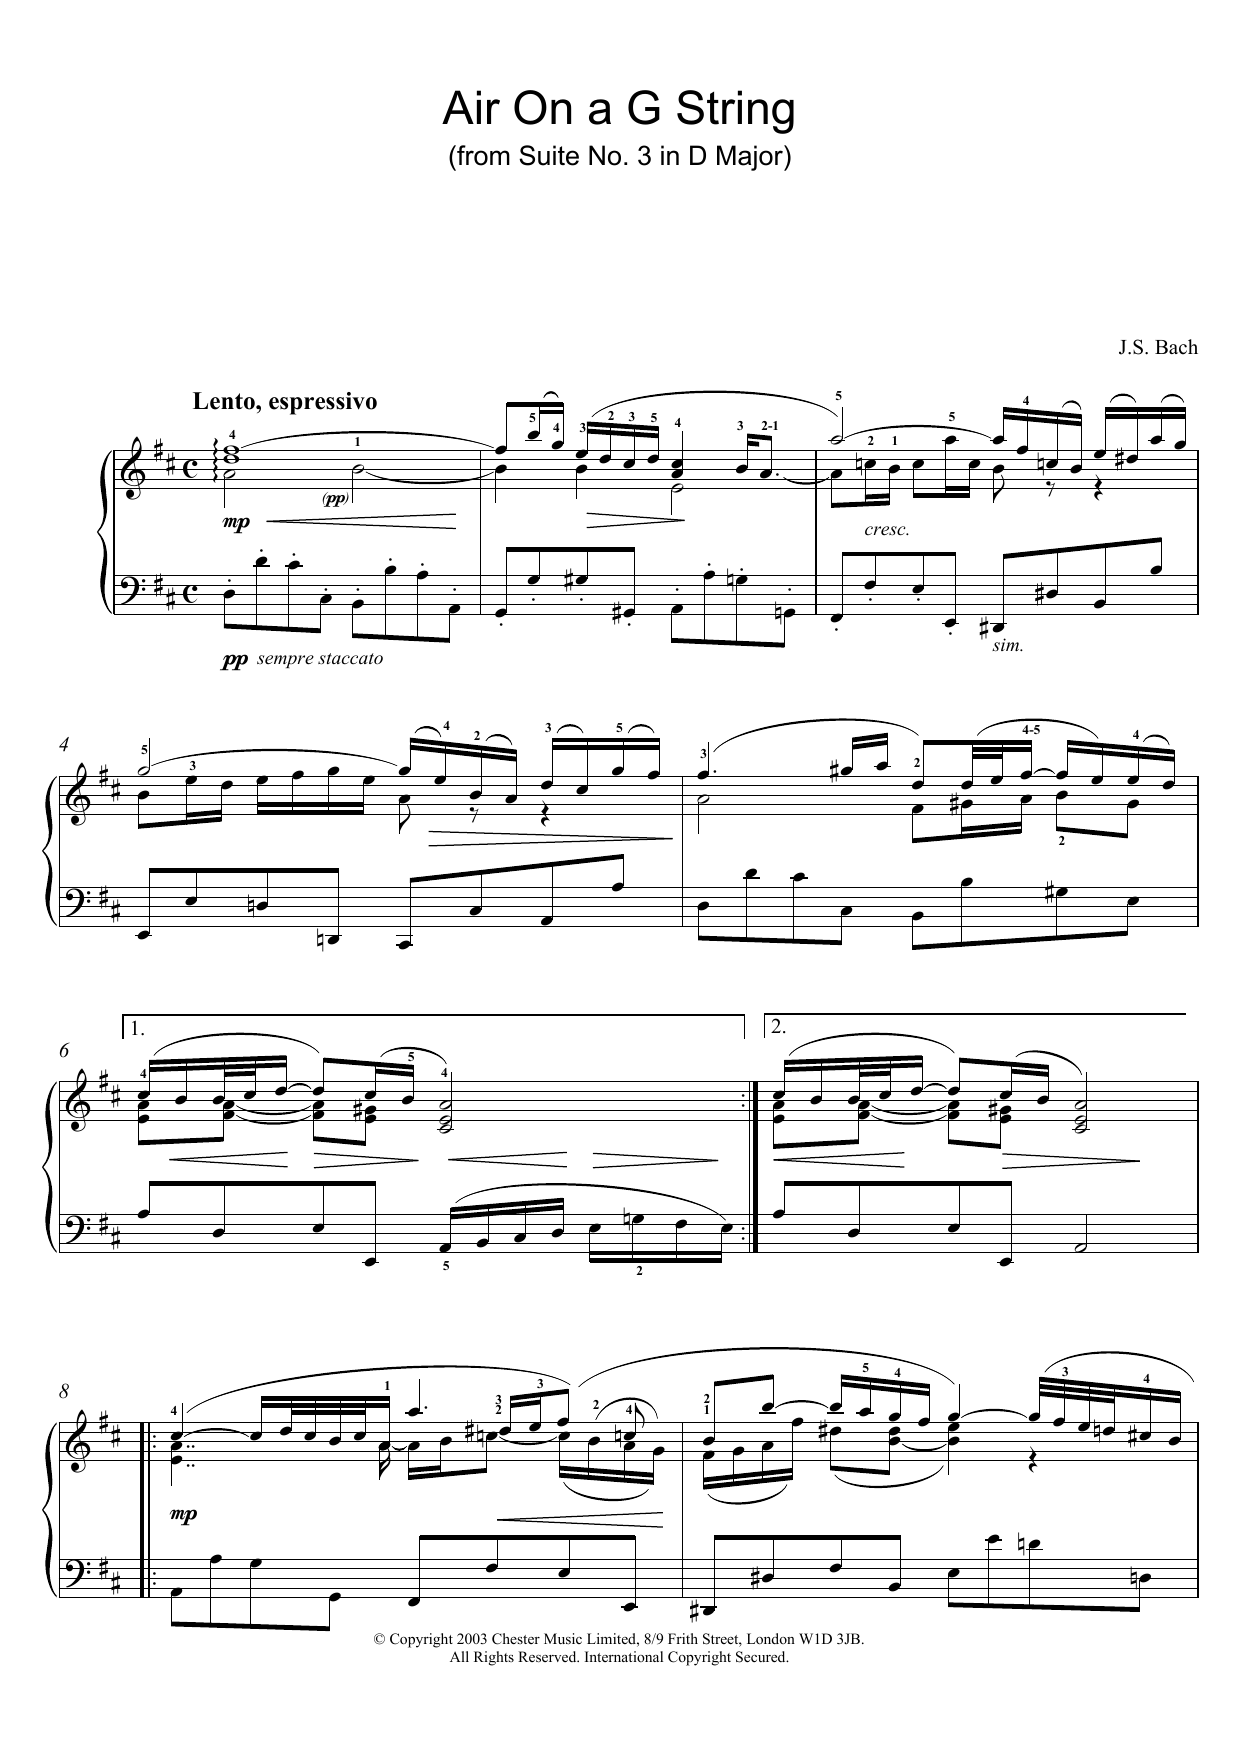 Air On The G String (from Suite No.3 in D Major) (Piano Solo)